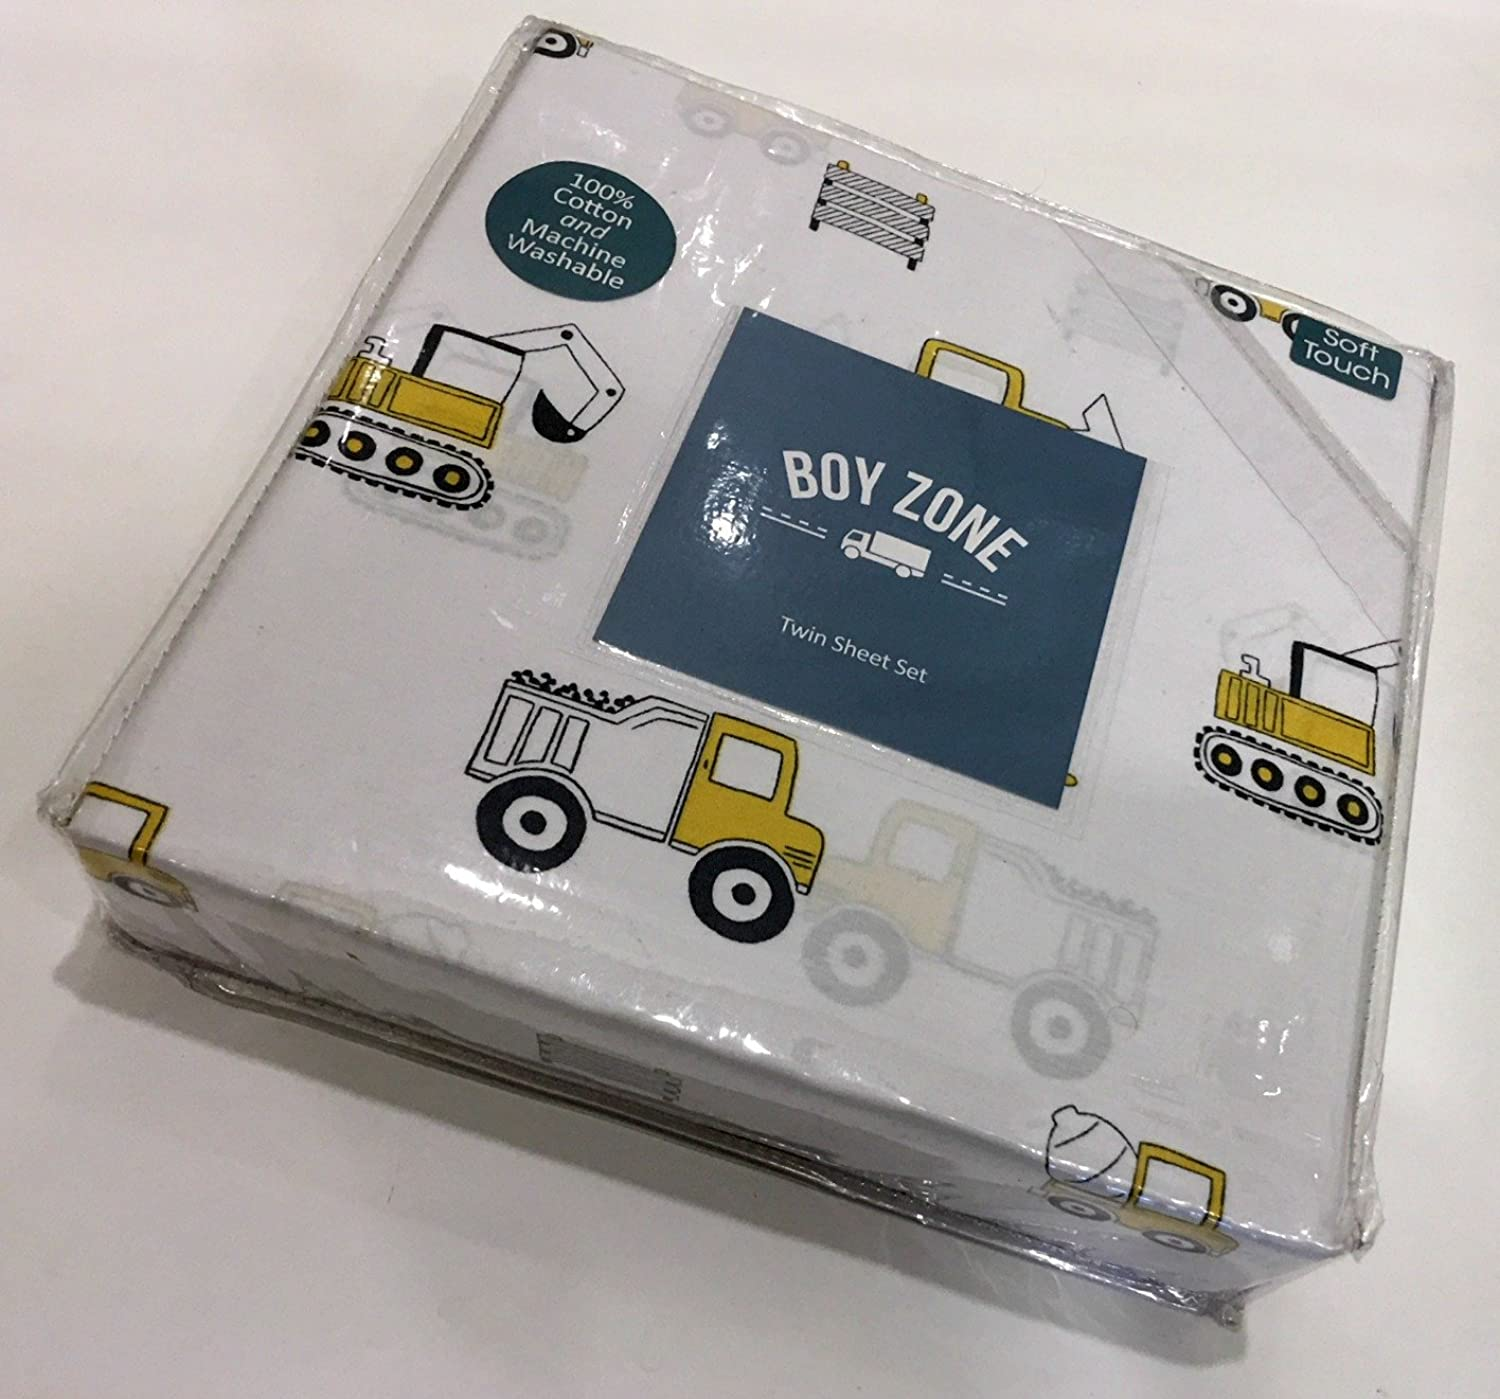 Boy Zone Twin Sheet Set Construction Vehicles   100% Easy-Care Cotton